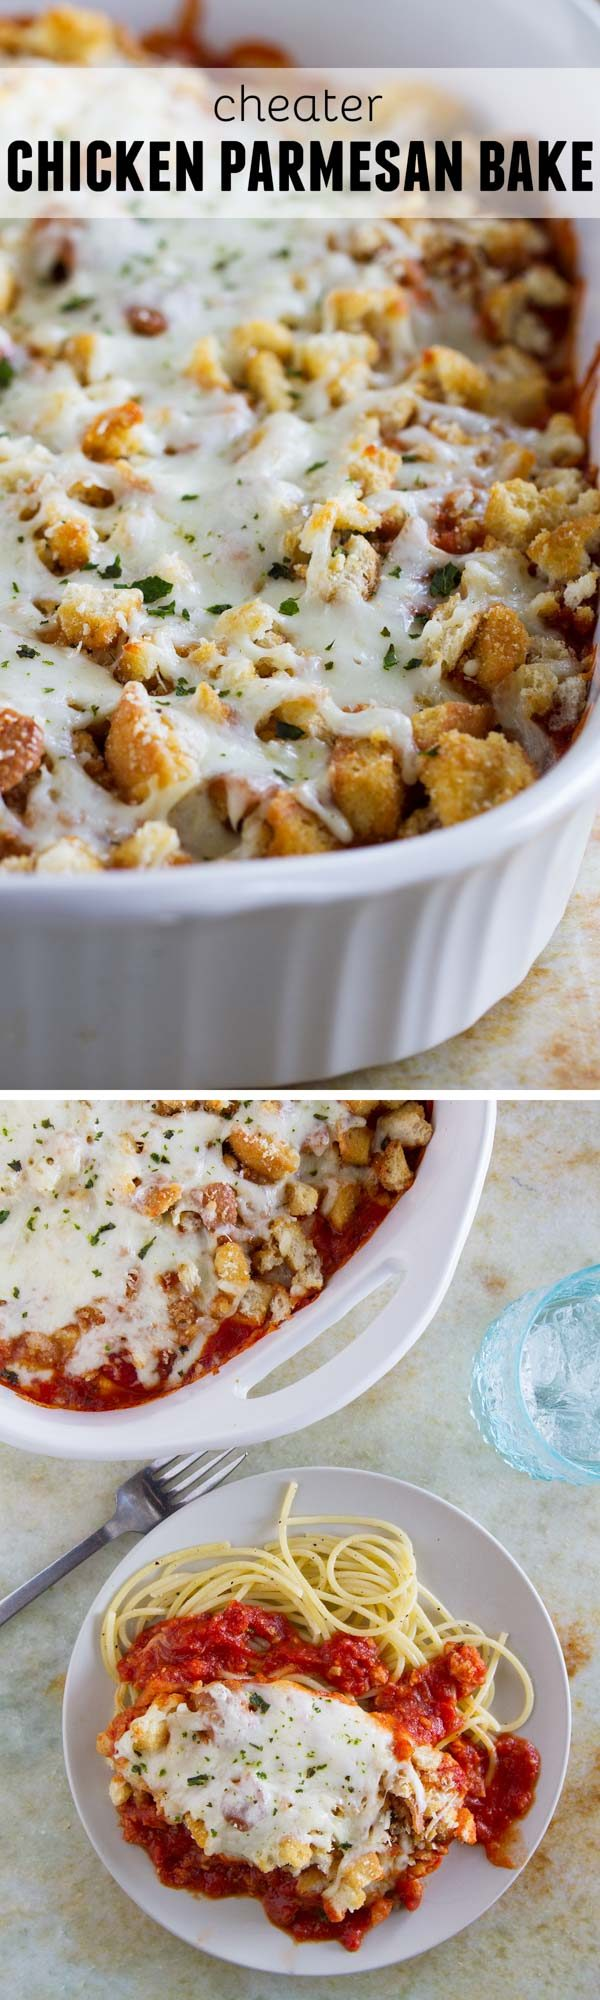 Forget the time and effort of breading and frying chicken - this Cheater Chicken Parmesan Bake gives you the same flavors and crispy texture from chicken parmesan with half the effort!